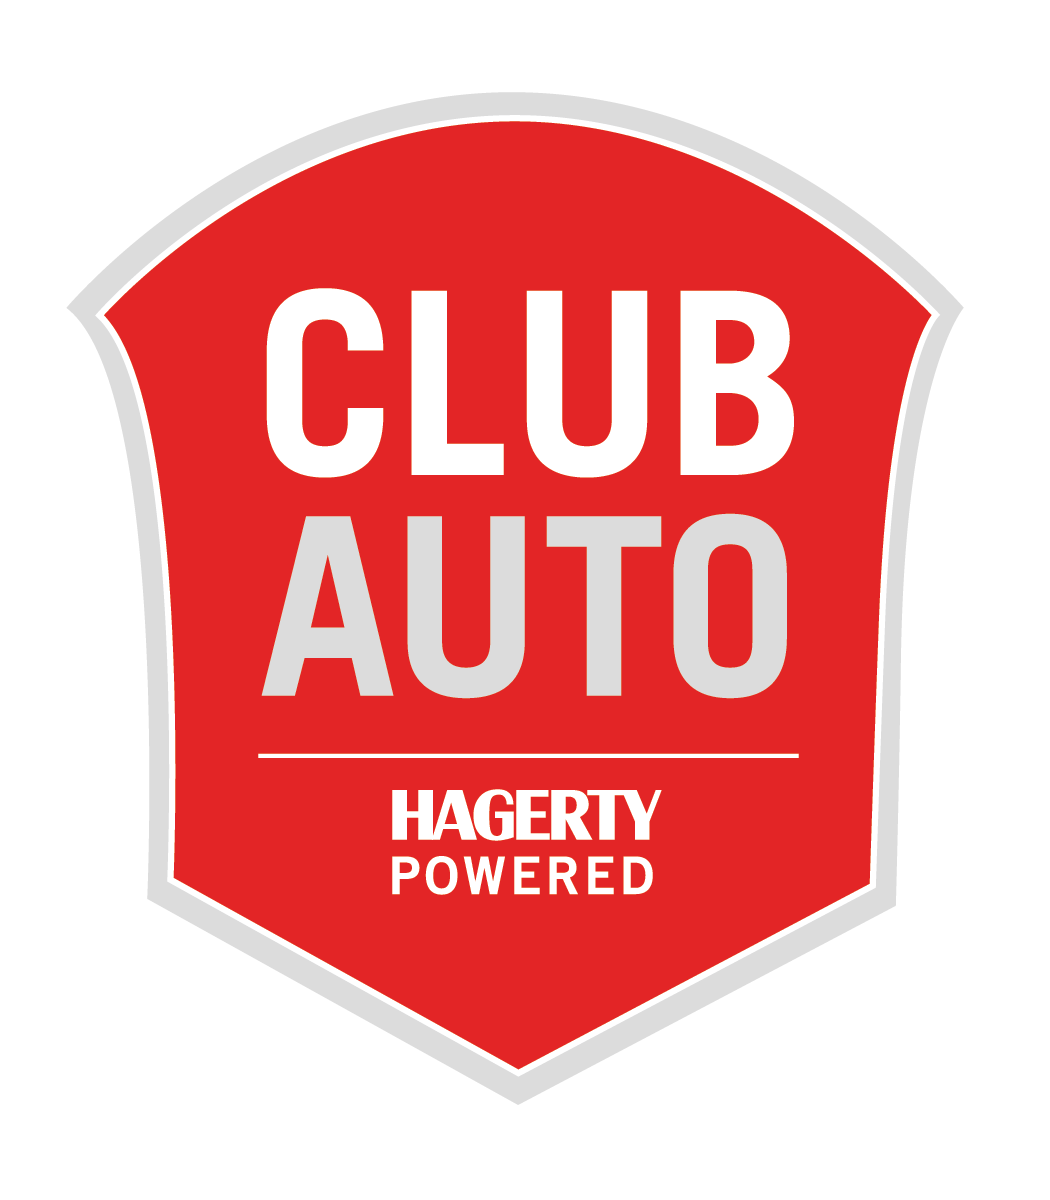 Club_Auto_2C_Red_Grey